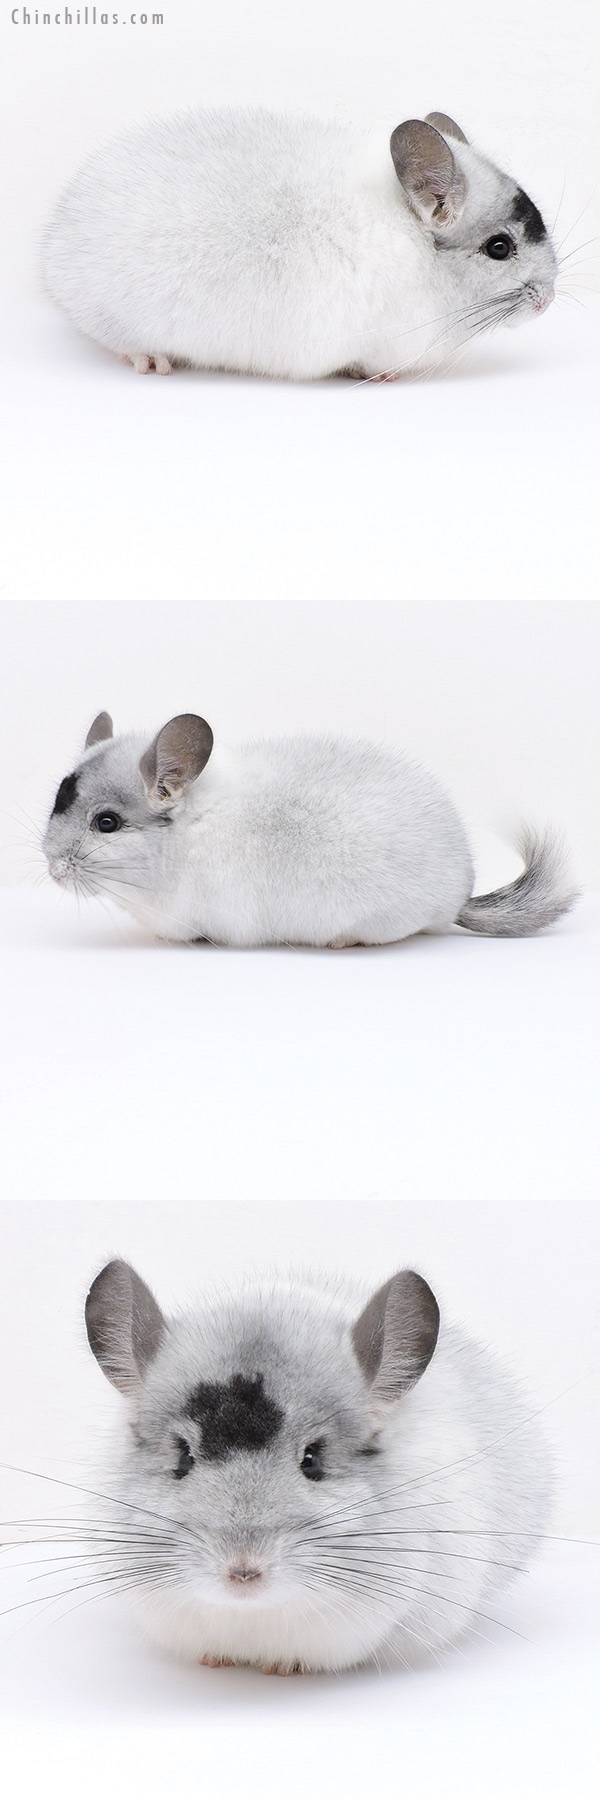 19028 Herd Improvement Quality Extreme White Mosaic Male Chinchilla